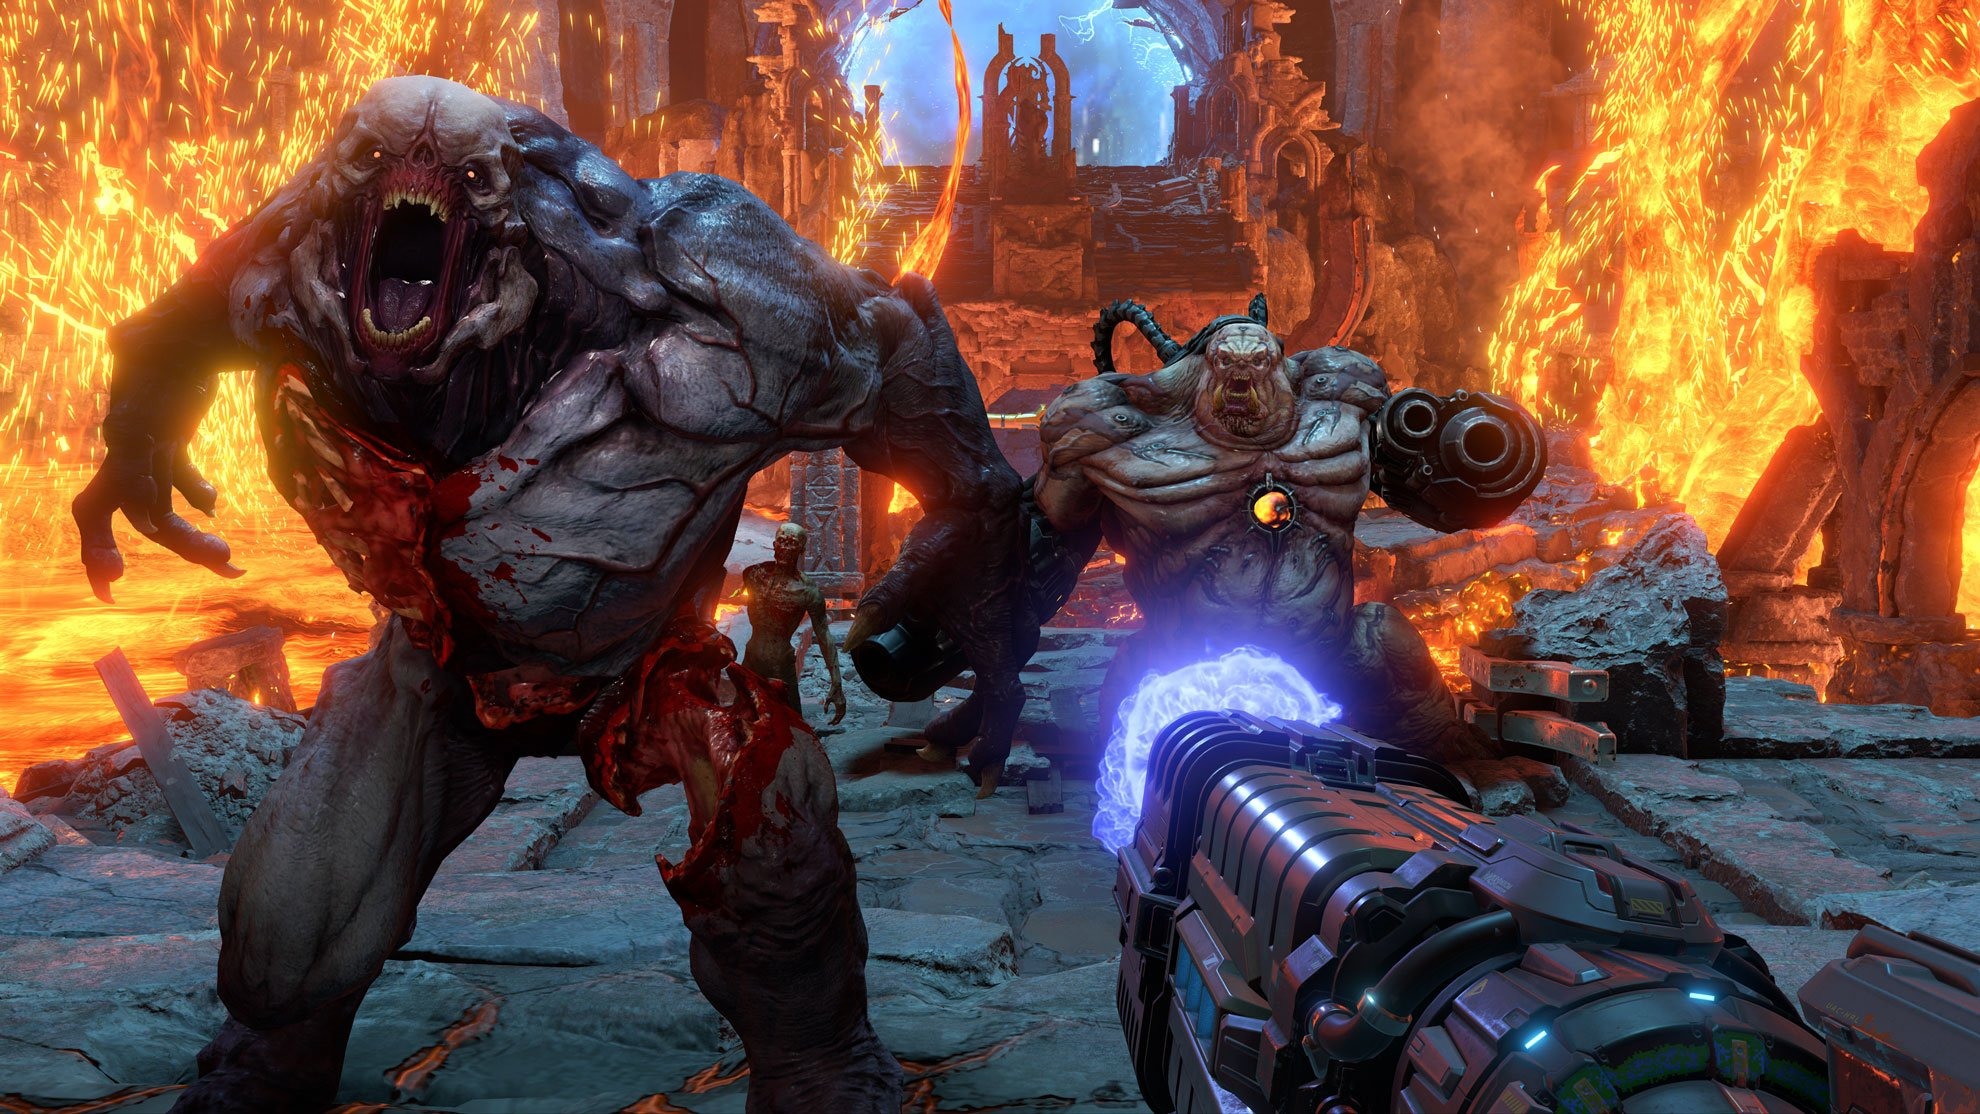 demons in a hellish environment charge the player in Doom Eternal